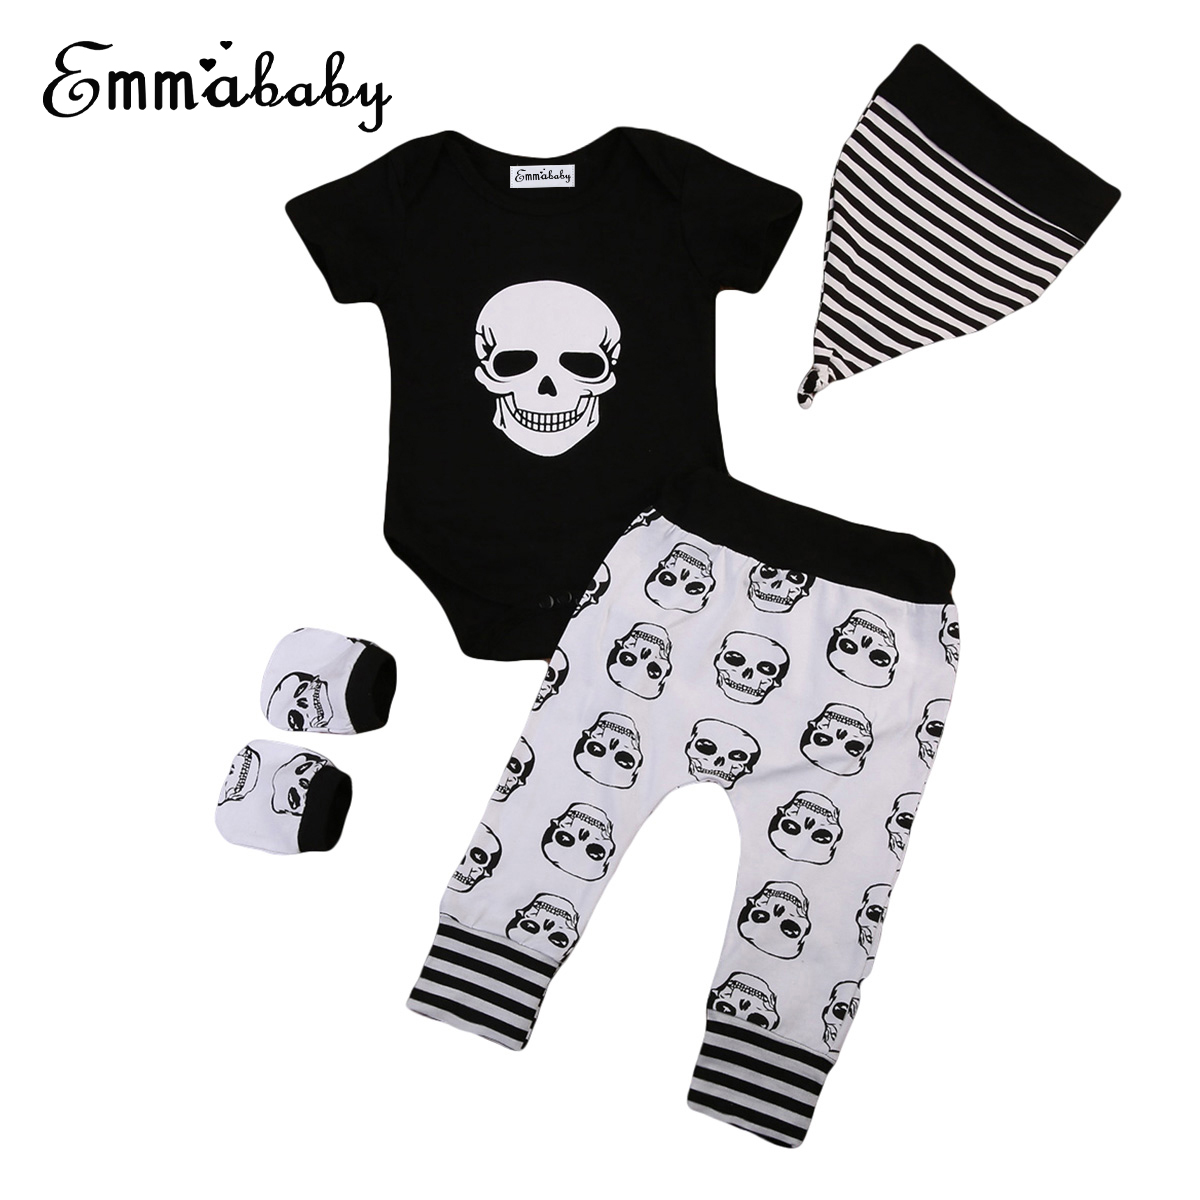 2018 new cute babies set Cotton Newborn Baby Boy Outfits Clothes Skull bodysuit print Pants Leggings lovely kid 4pcs outfit Set